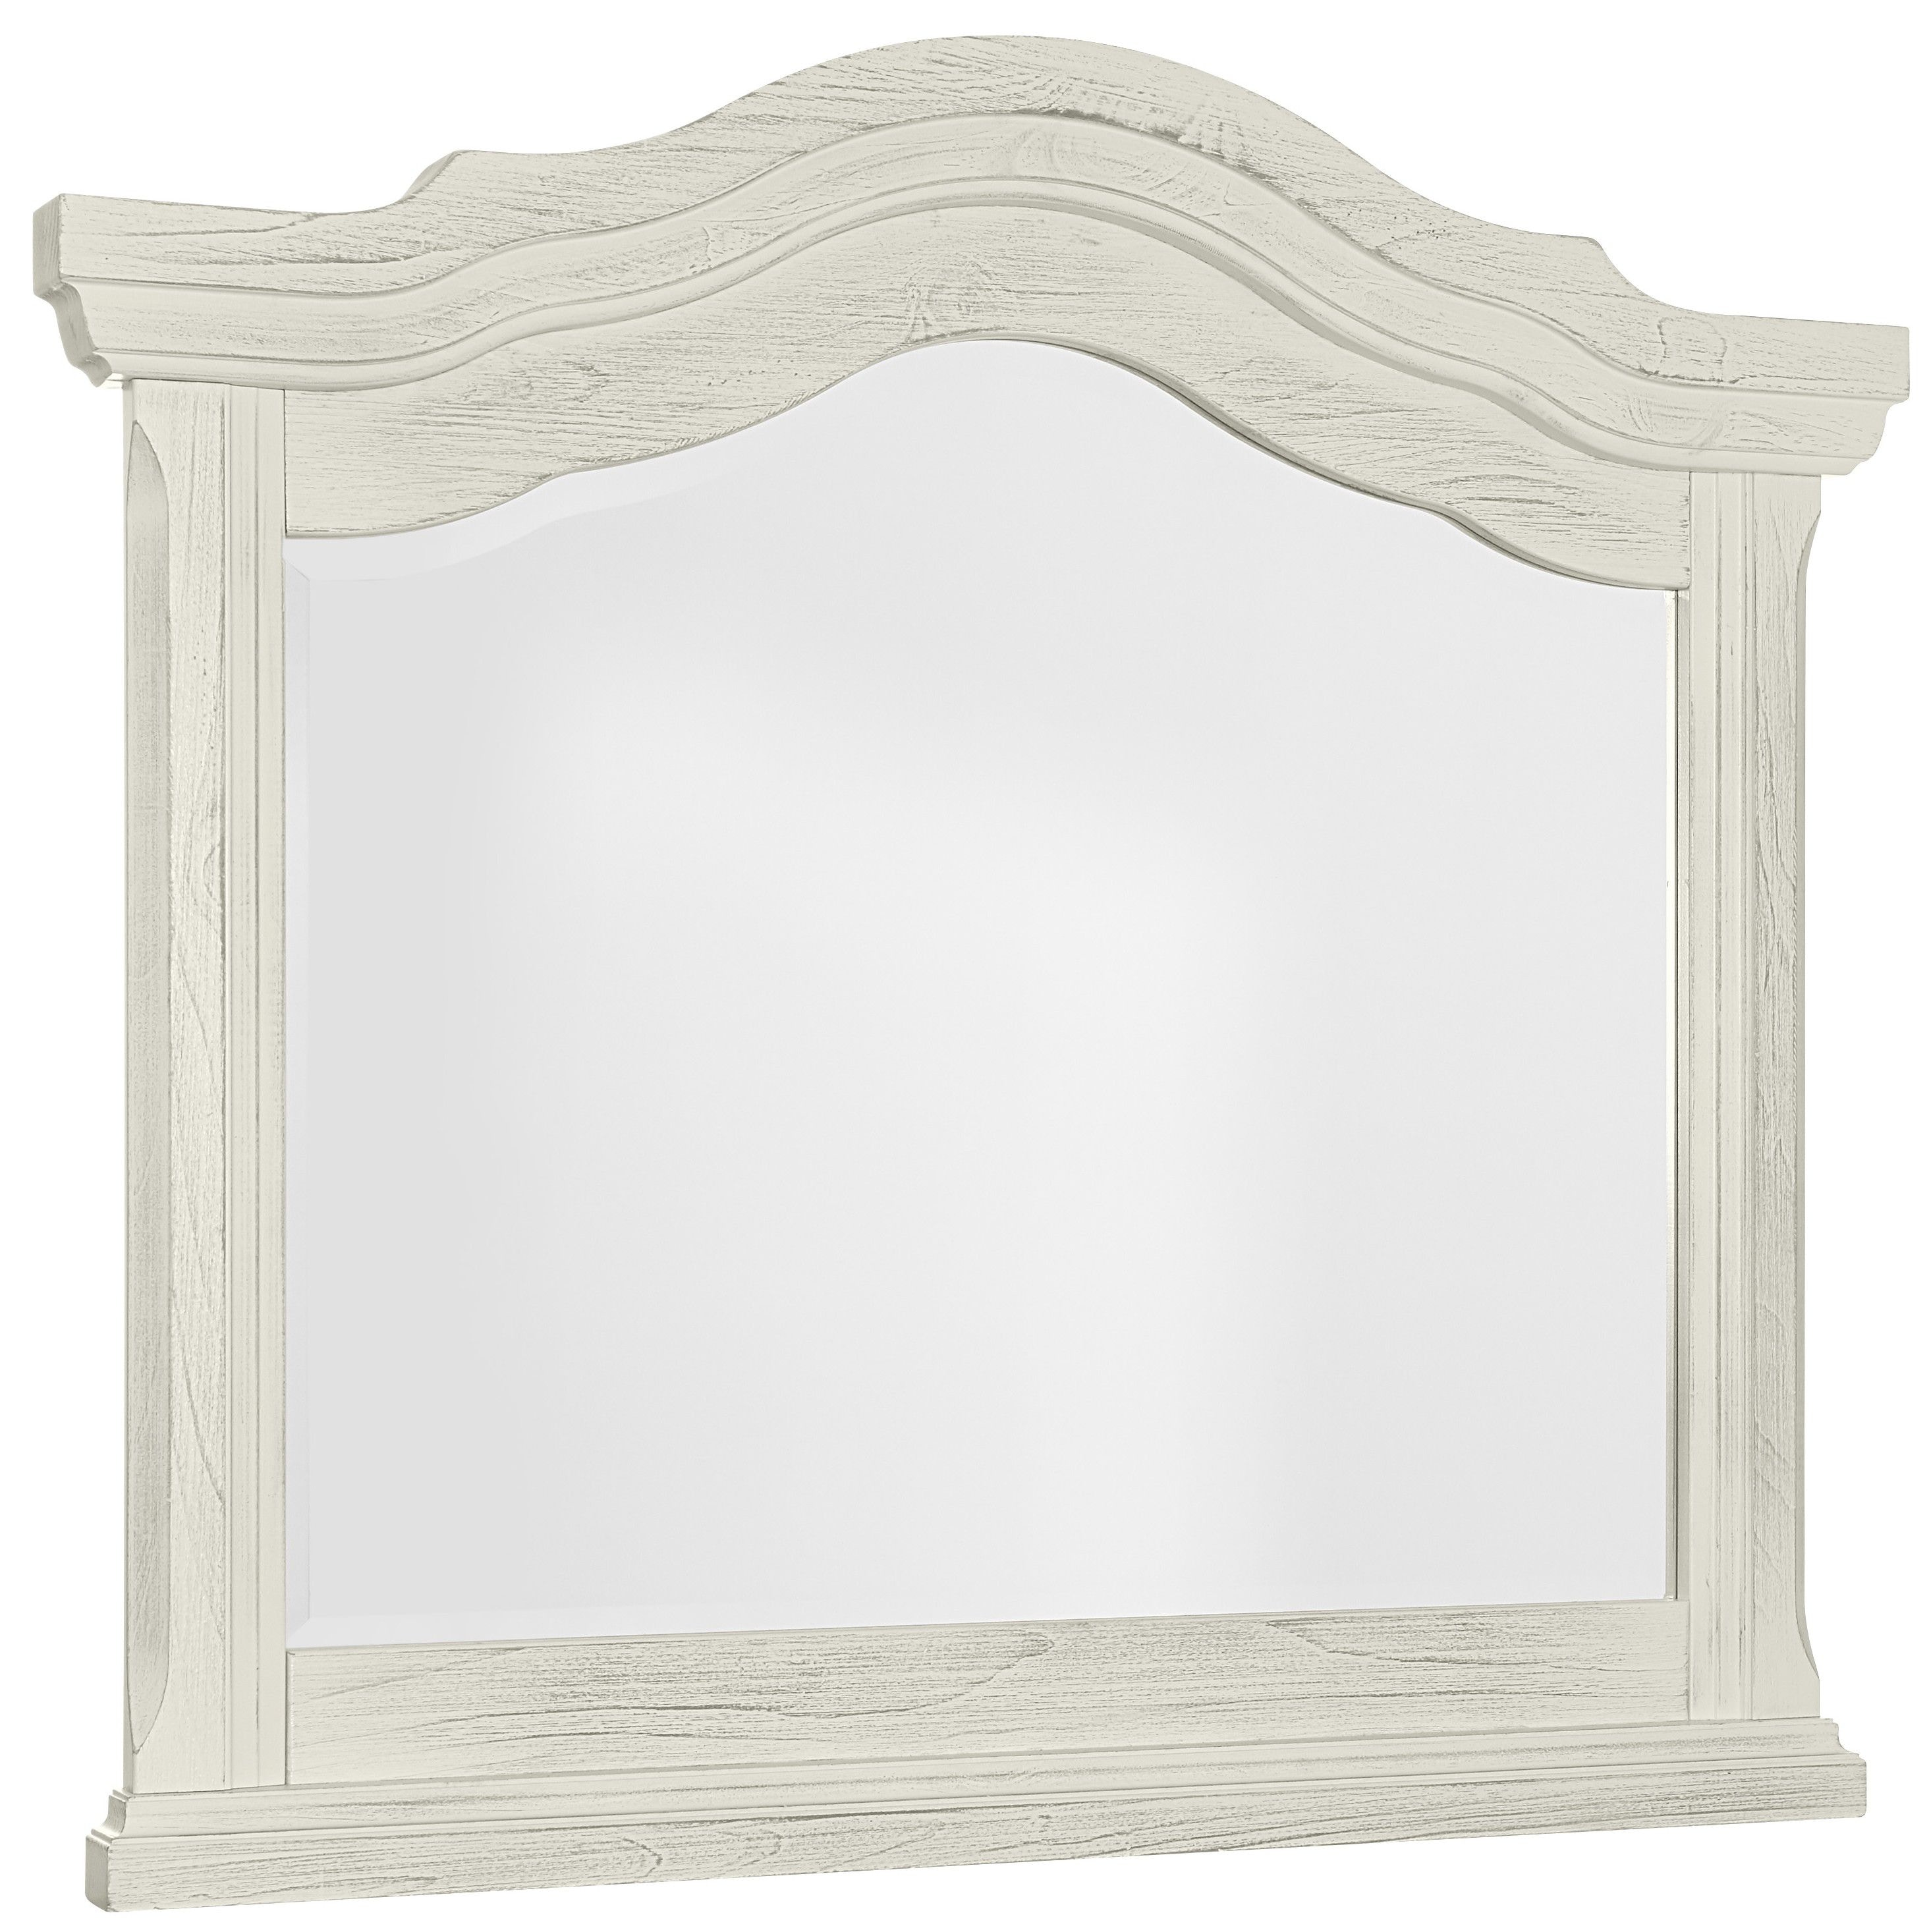 Vaughan Bassett Furniture Company Arch Mirror 684 446